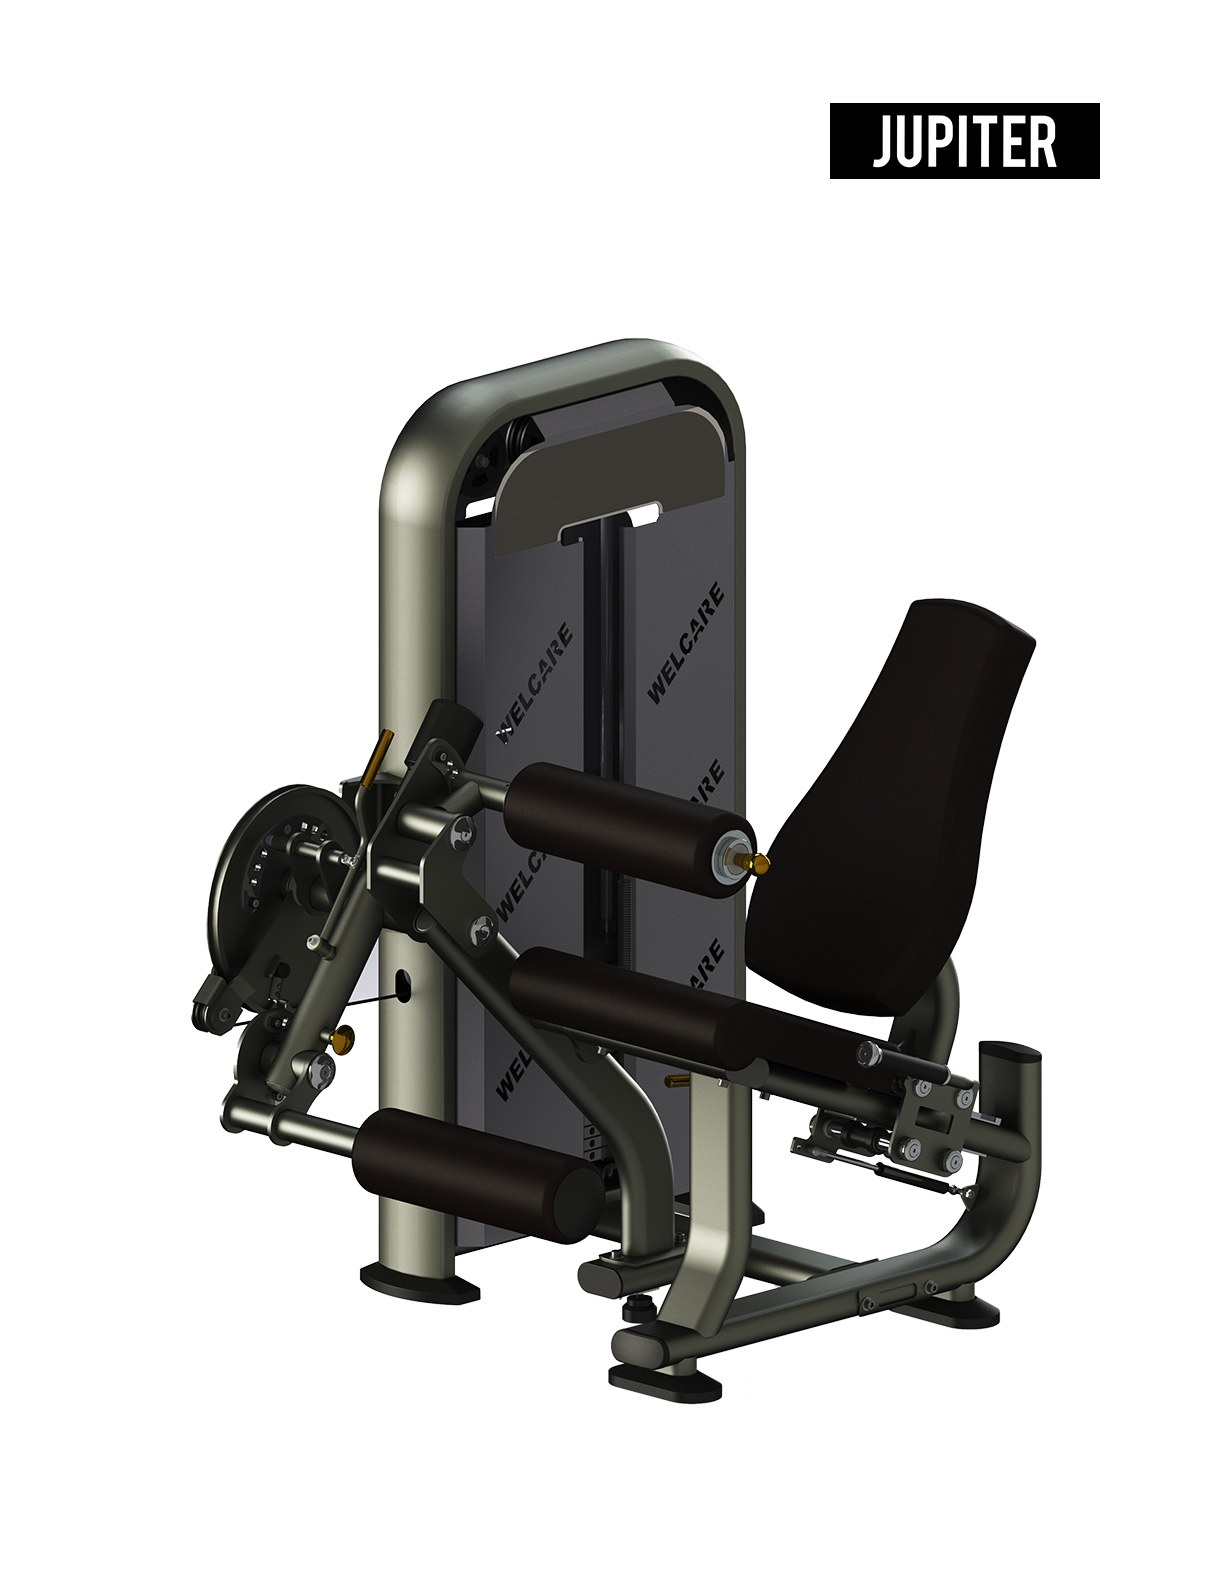 JL8923 SEATED LEG EXTENSION/ LEG CURL